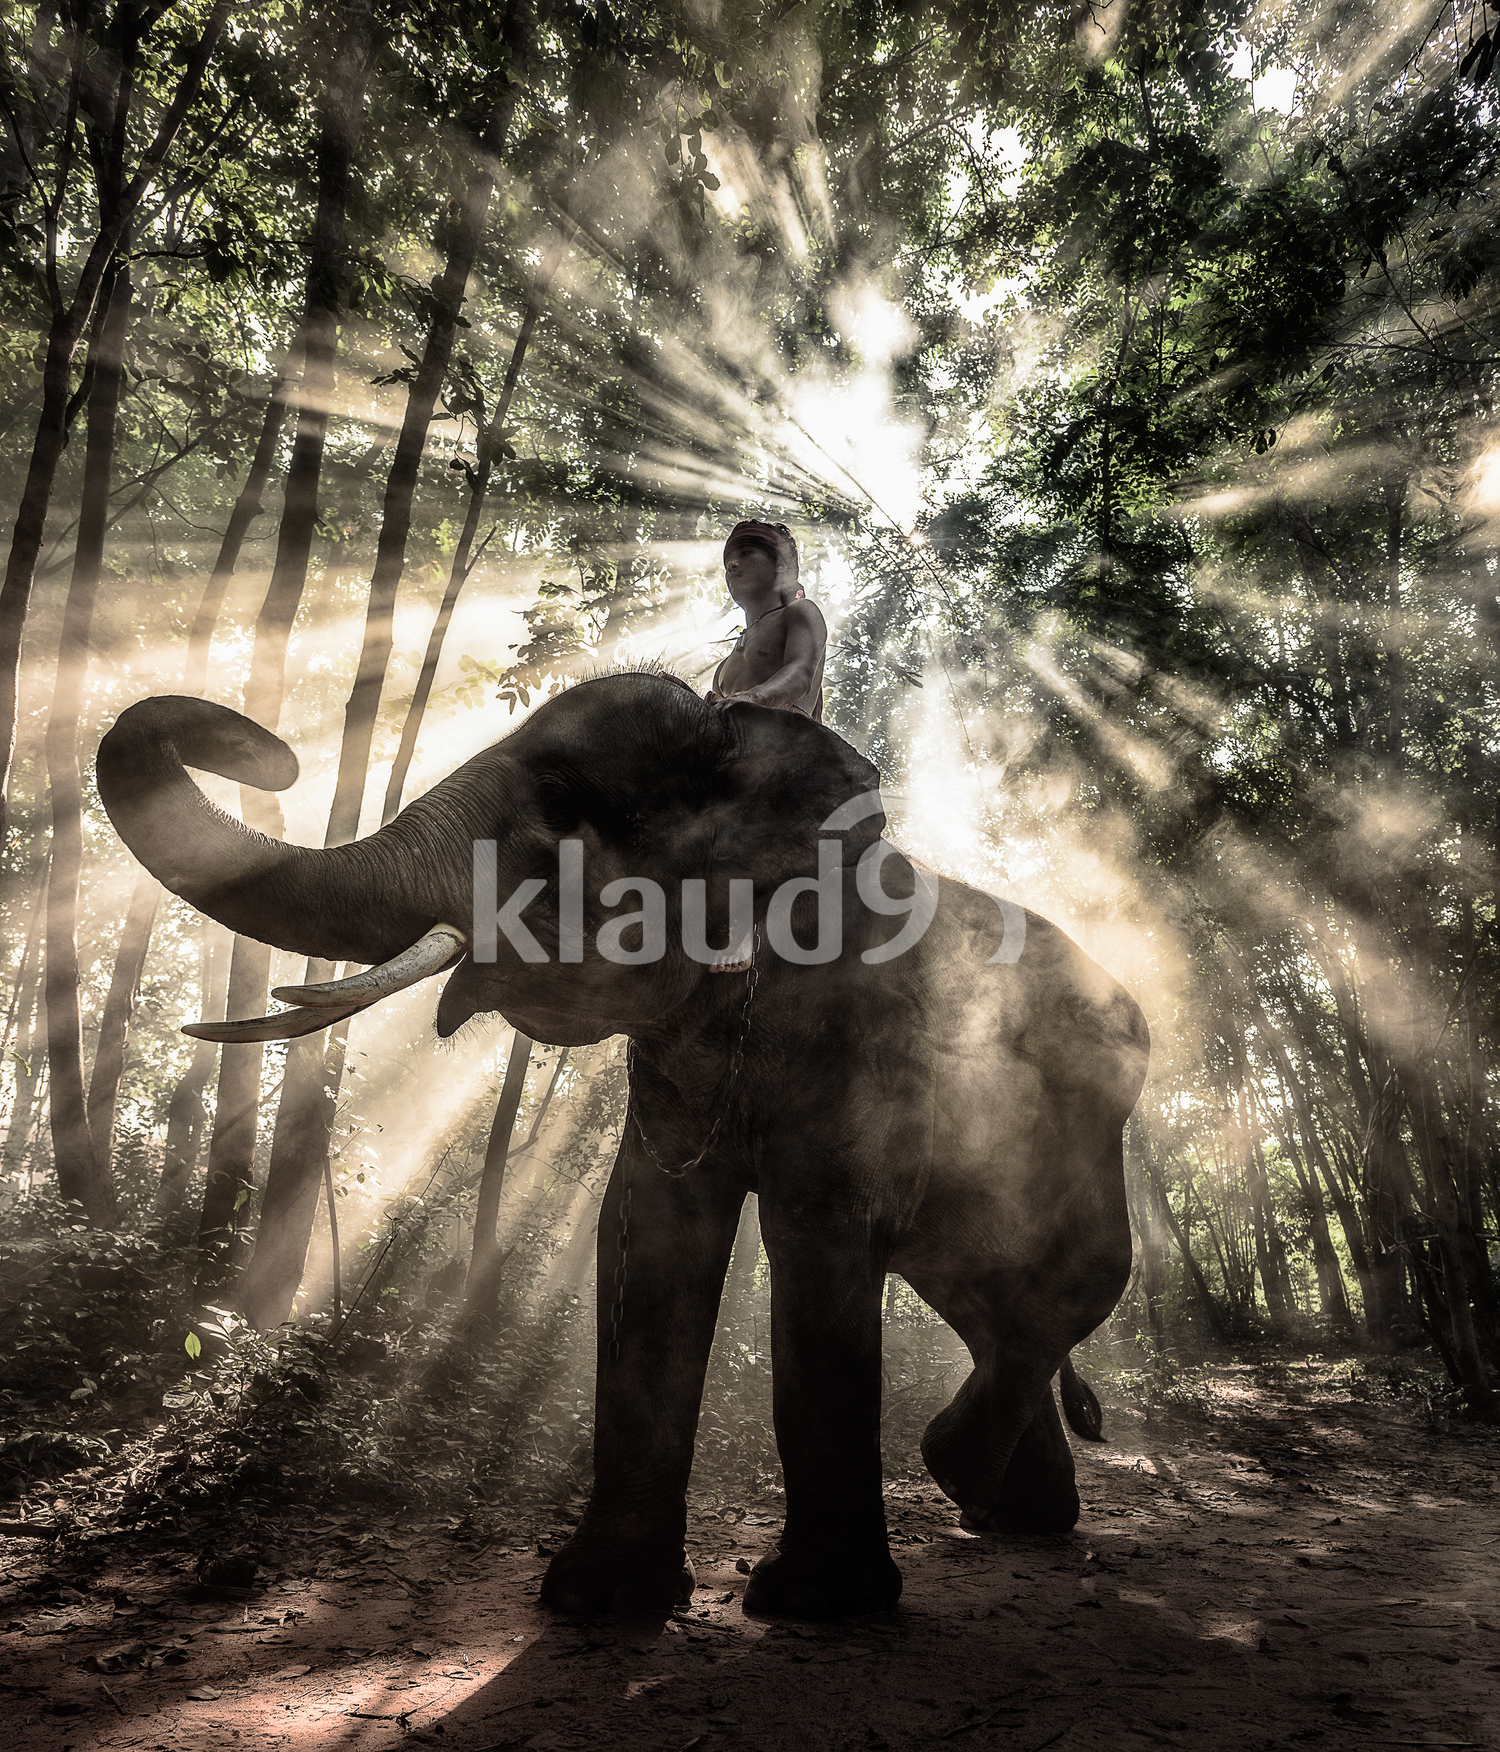 Silhouette of elephant trekking through forest covered in rays of light